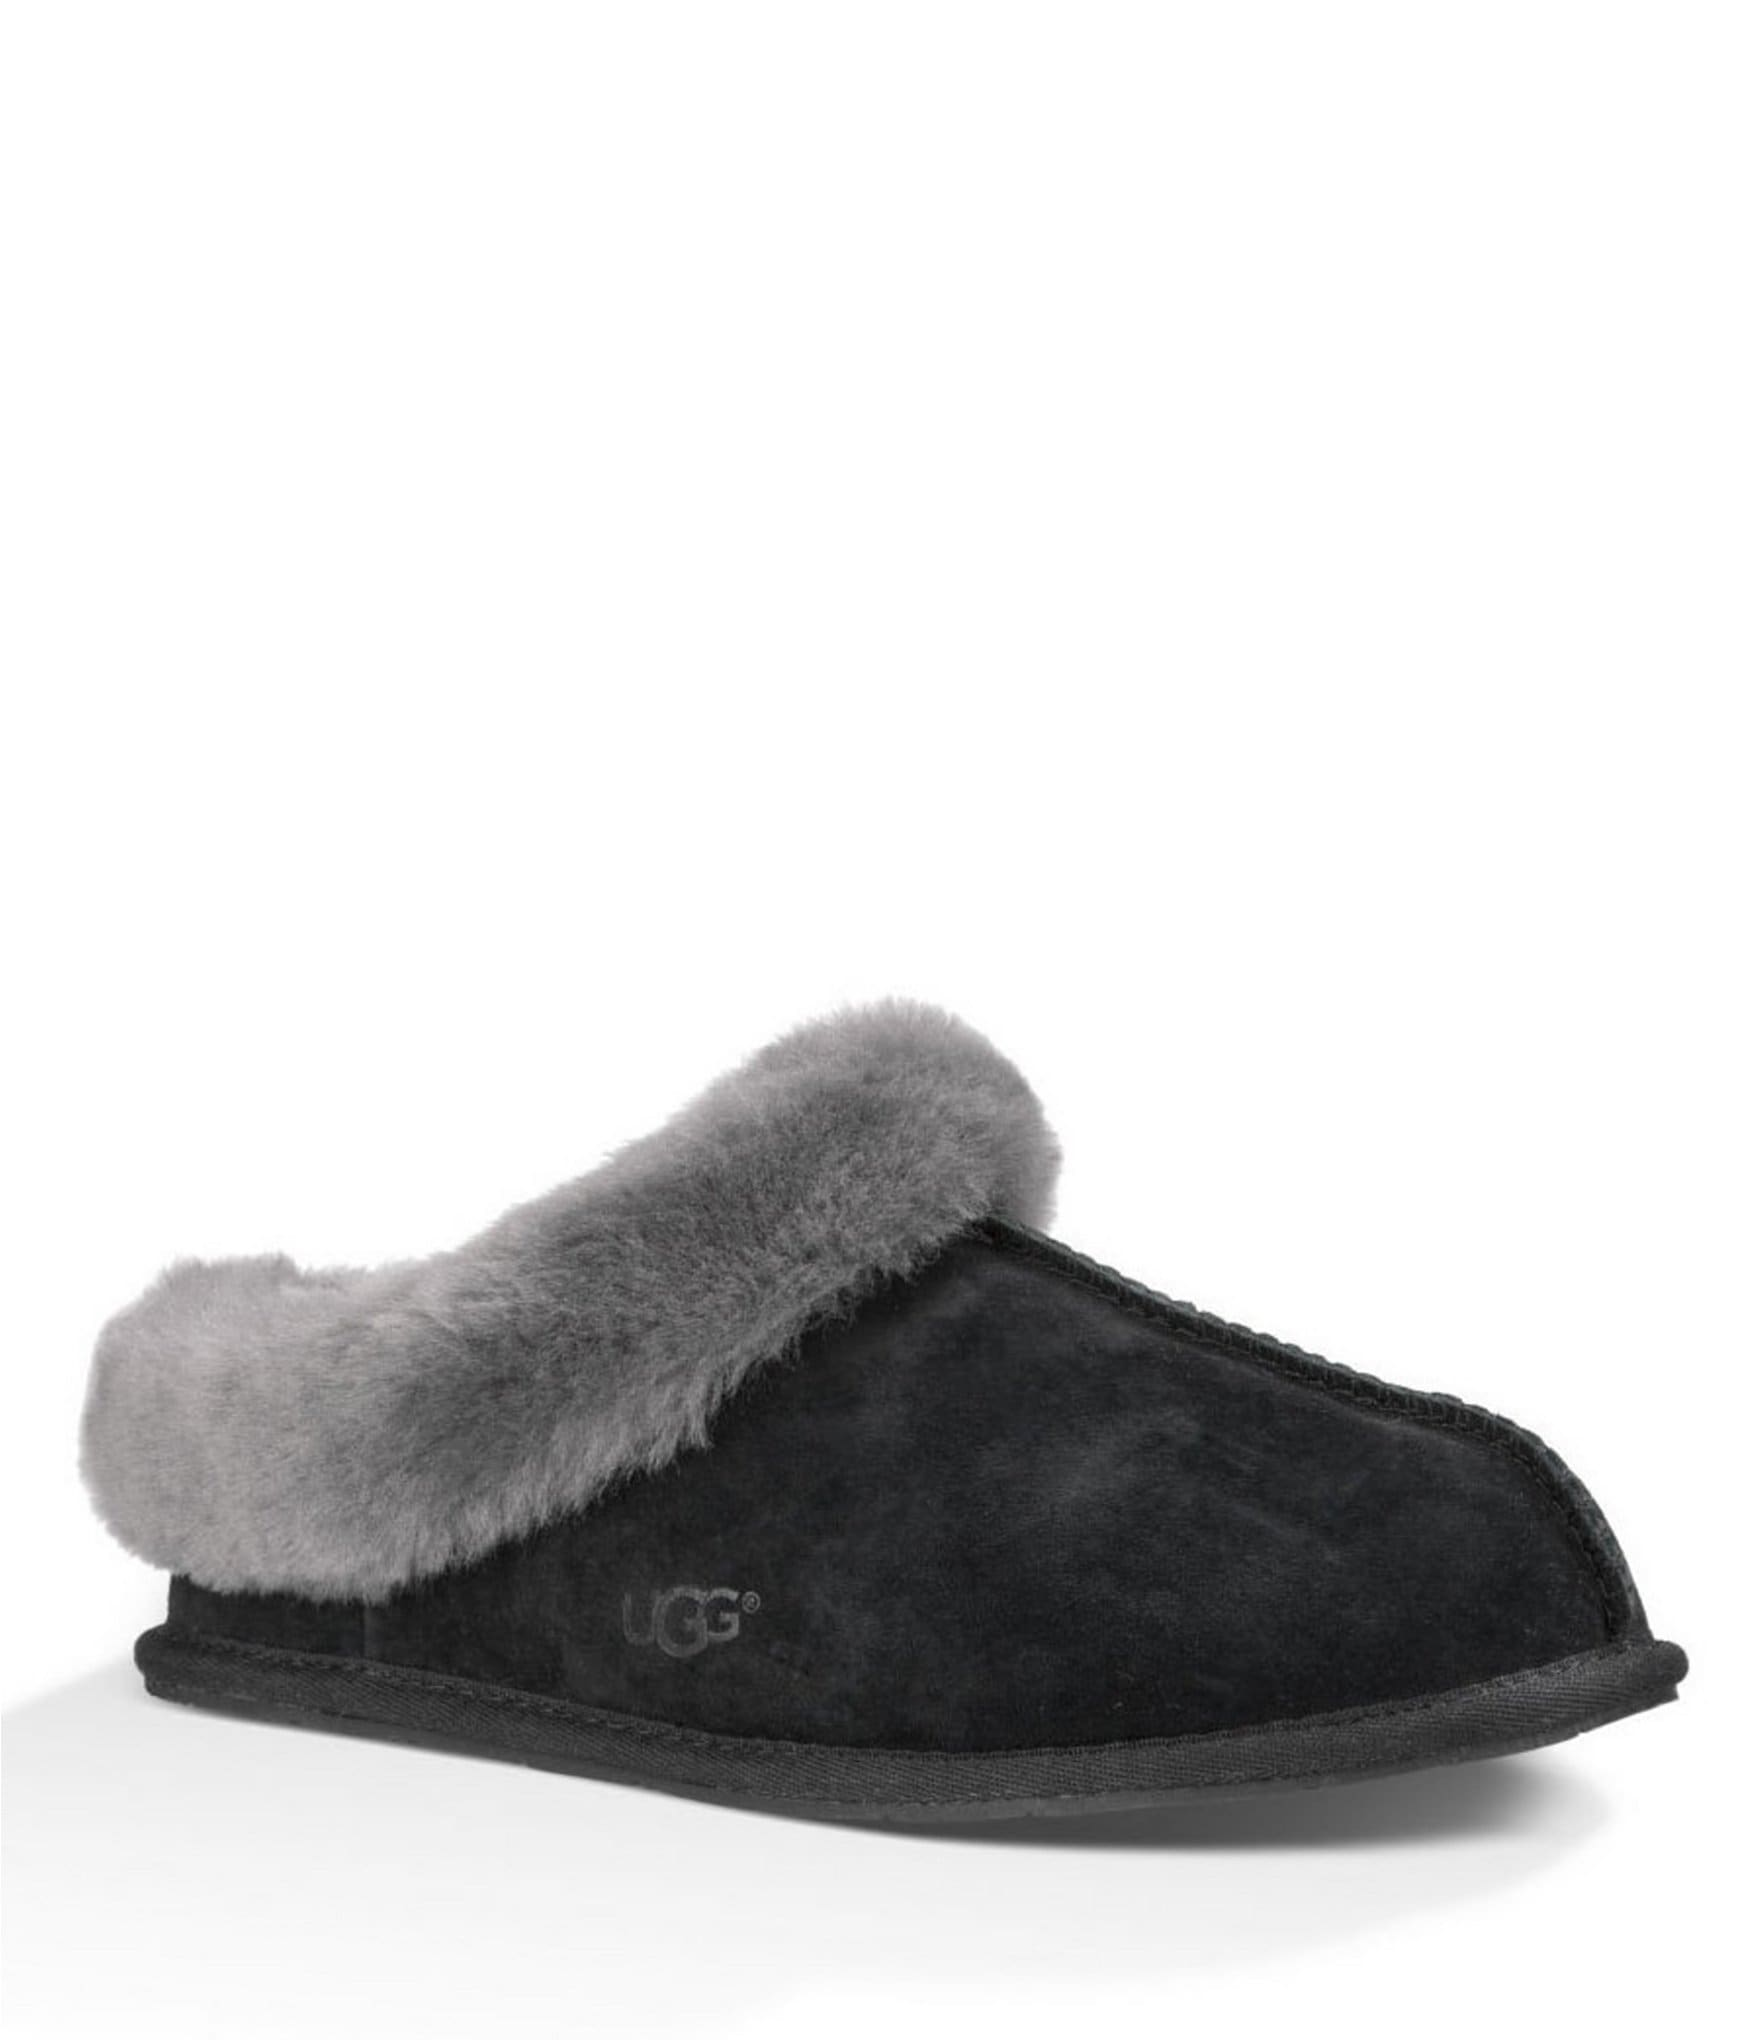 ugg bedroom slippers.  ugg slippers Dillards com